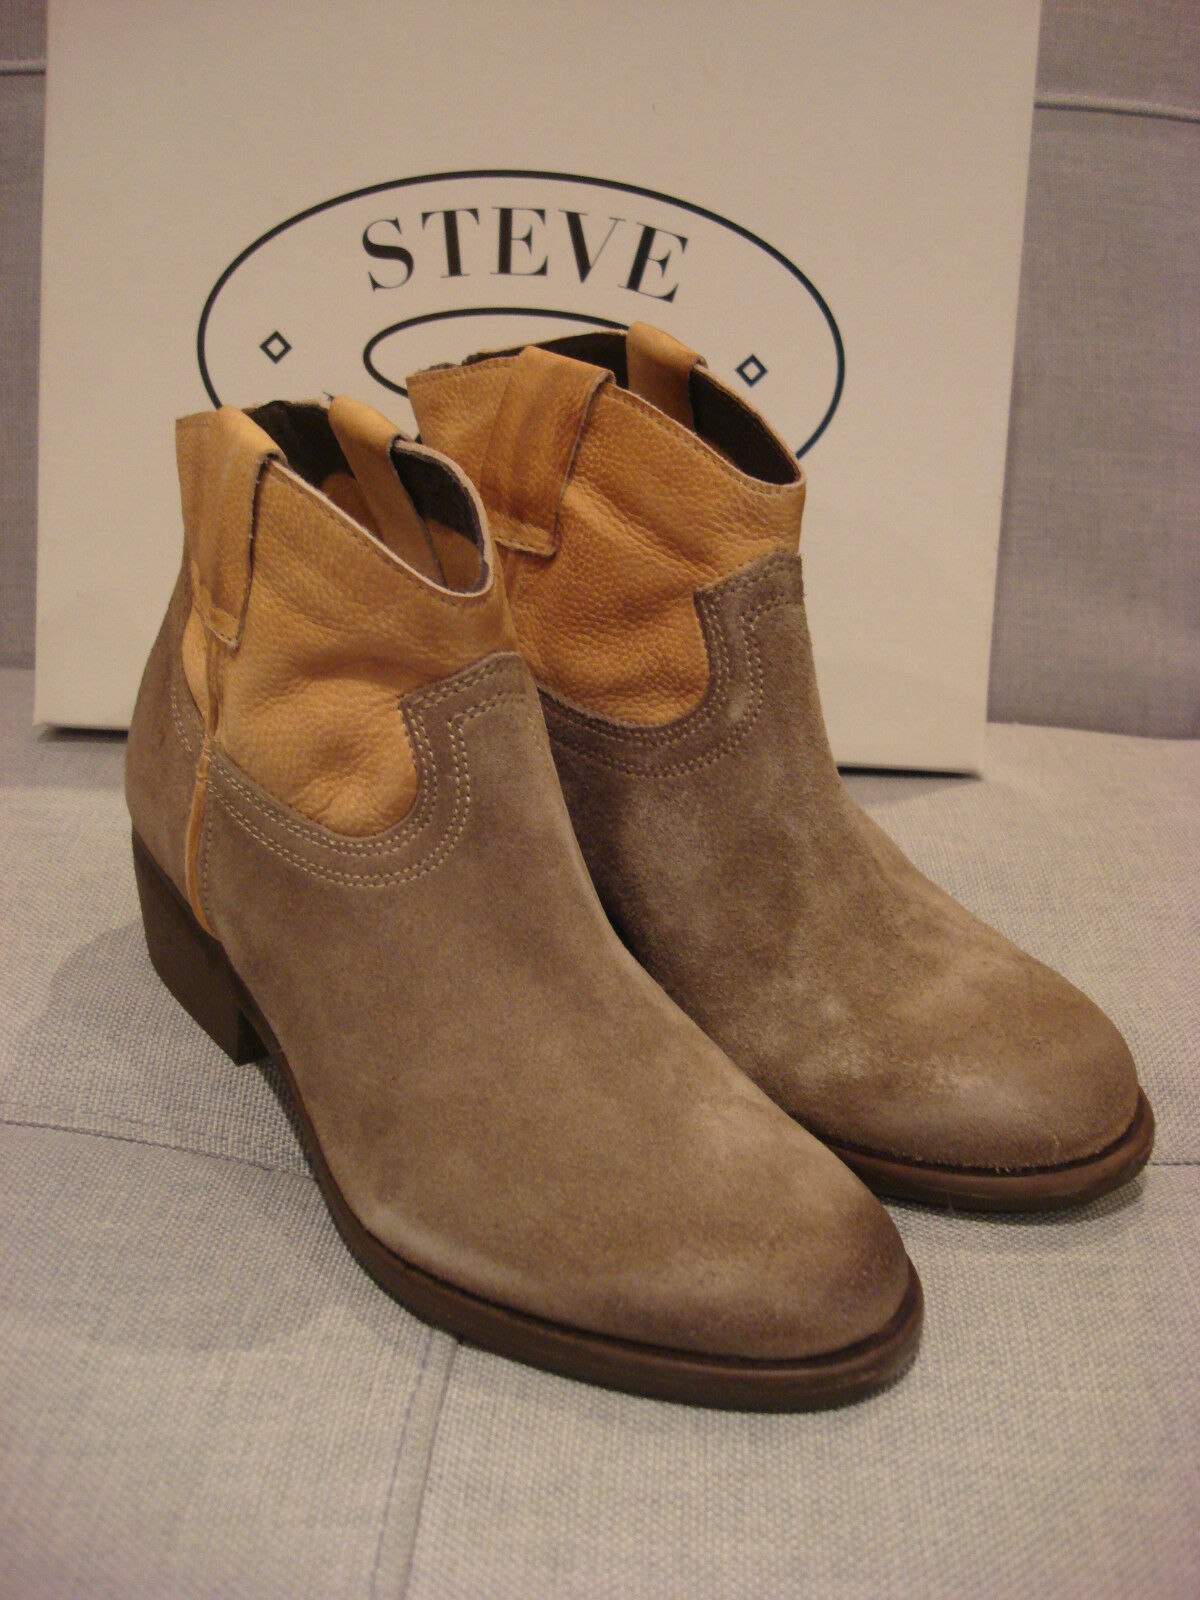 STEVE MADDEN Femme MIDNITE COWBOY ANKLE Bottes COGNAC Taille 6 Chaussures - BRAND NEW